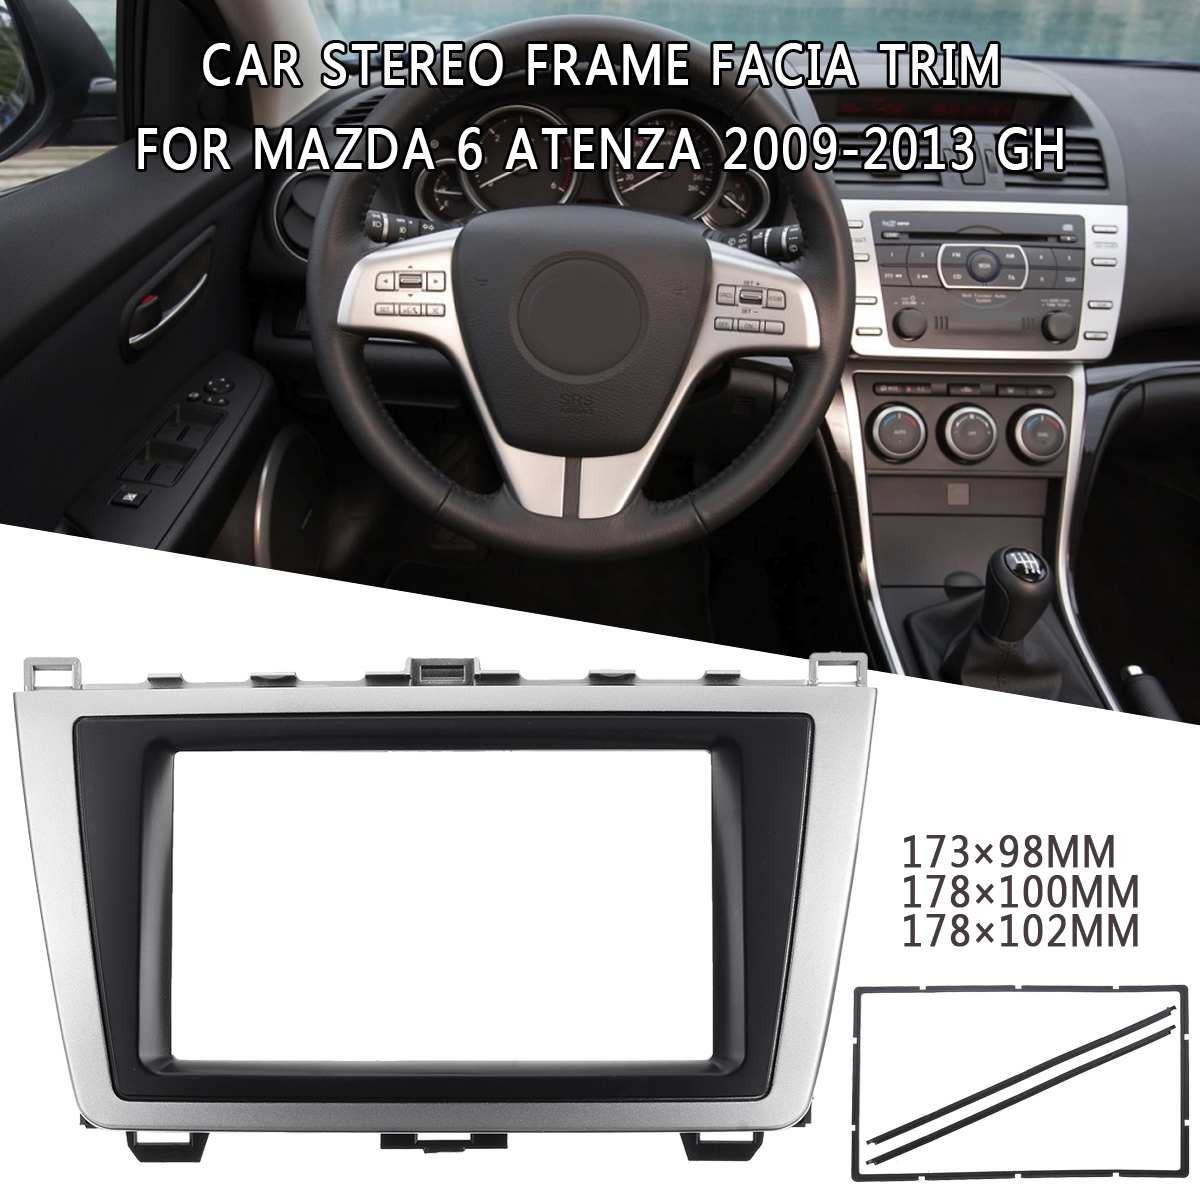 2DIN Car DVD Stereo Panel Radio Fascia for <font><b>Mazda</b></font> <font><b>6</b></font> Atenza 2009 <font><b>2010</b></font> 2011 2012 2013 Dash Mount Plastic Metal Frame UV Silver Blac image